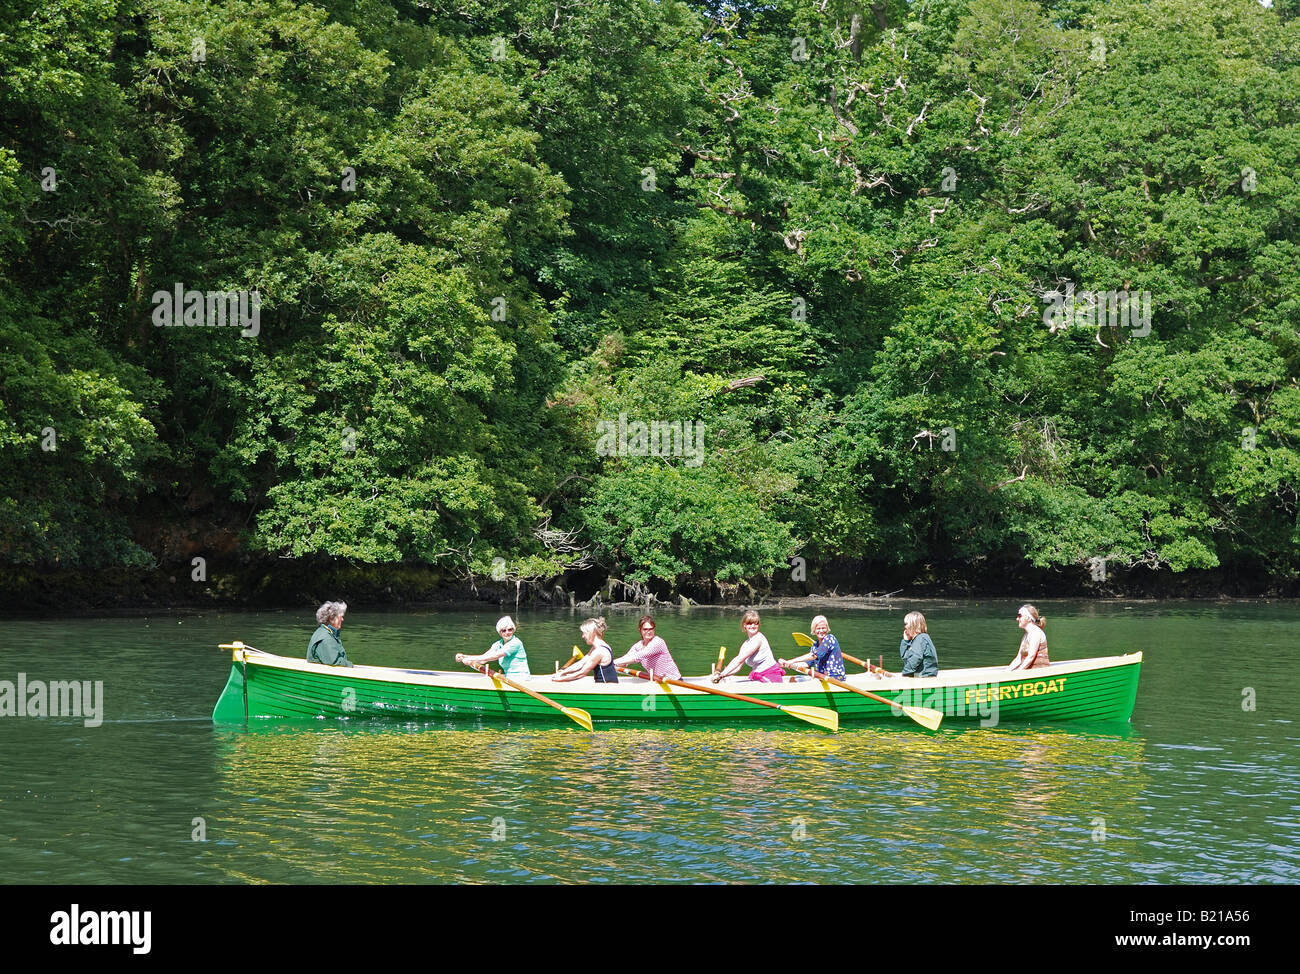 A female cornish gig rowing team training on the helford river in cornwall, uk. - Stock Image